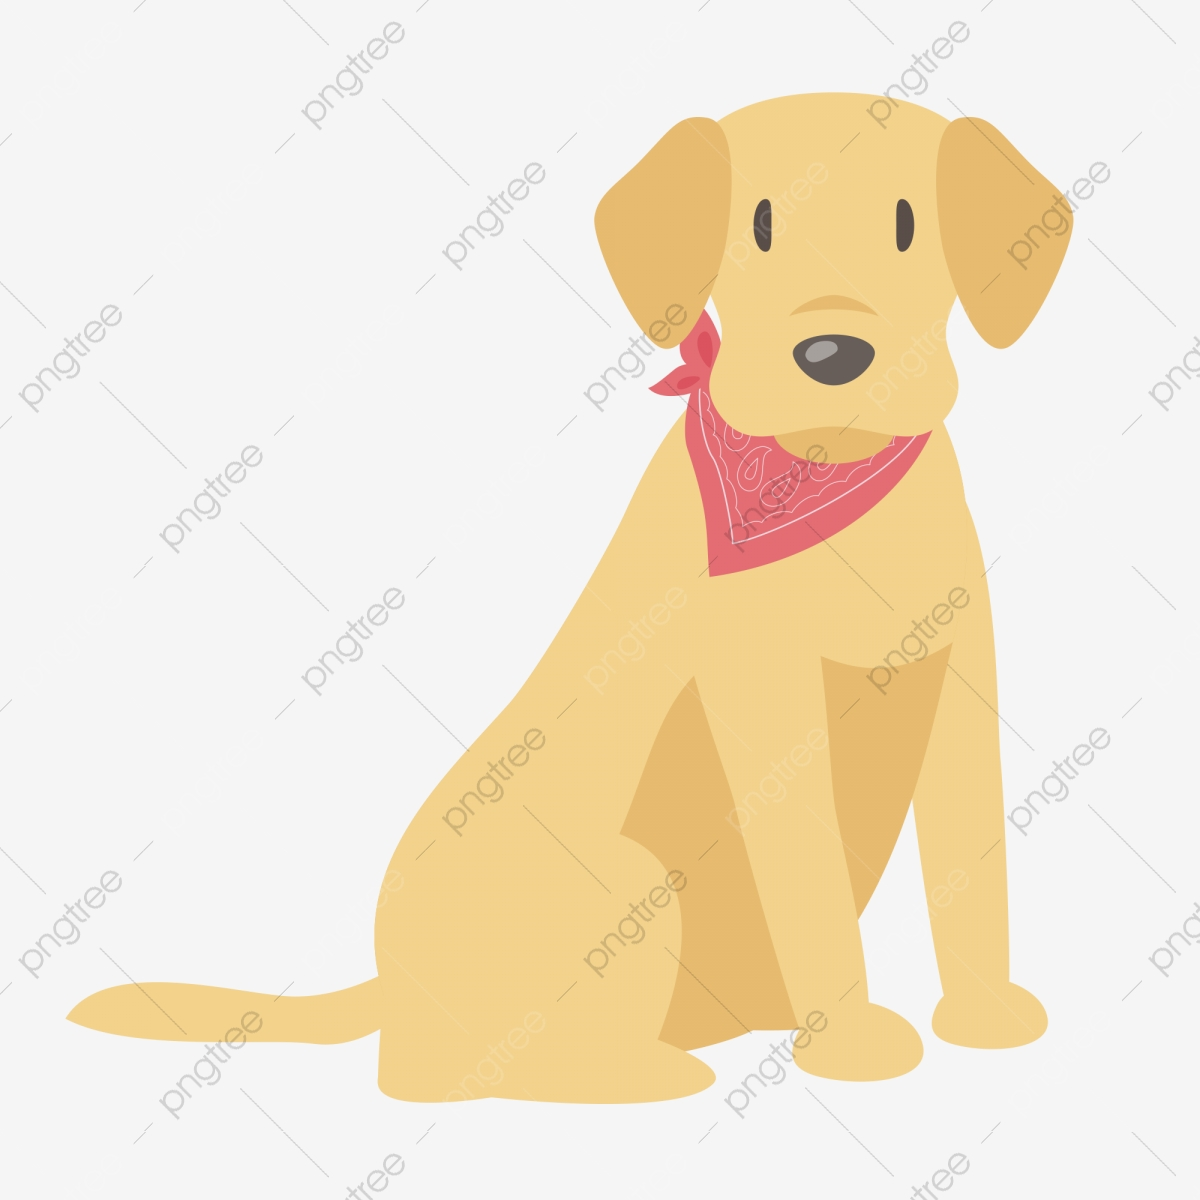 Dog Cartoon Dog Year Of The Dog 2018 Pet Loyalty Lovely Png And Vector With Transparent Background For Free Download